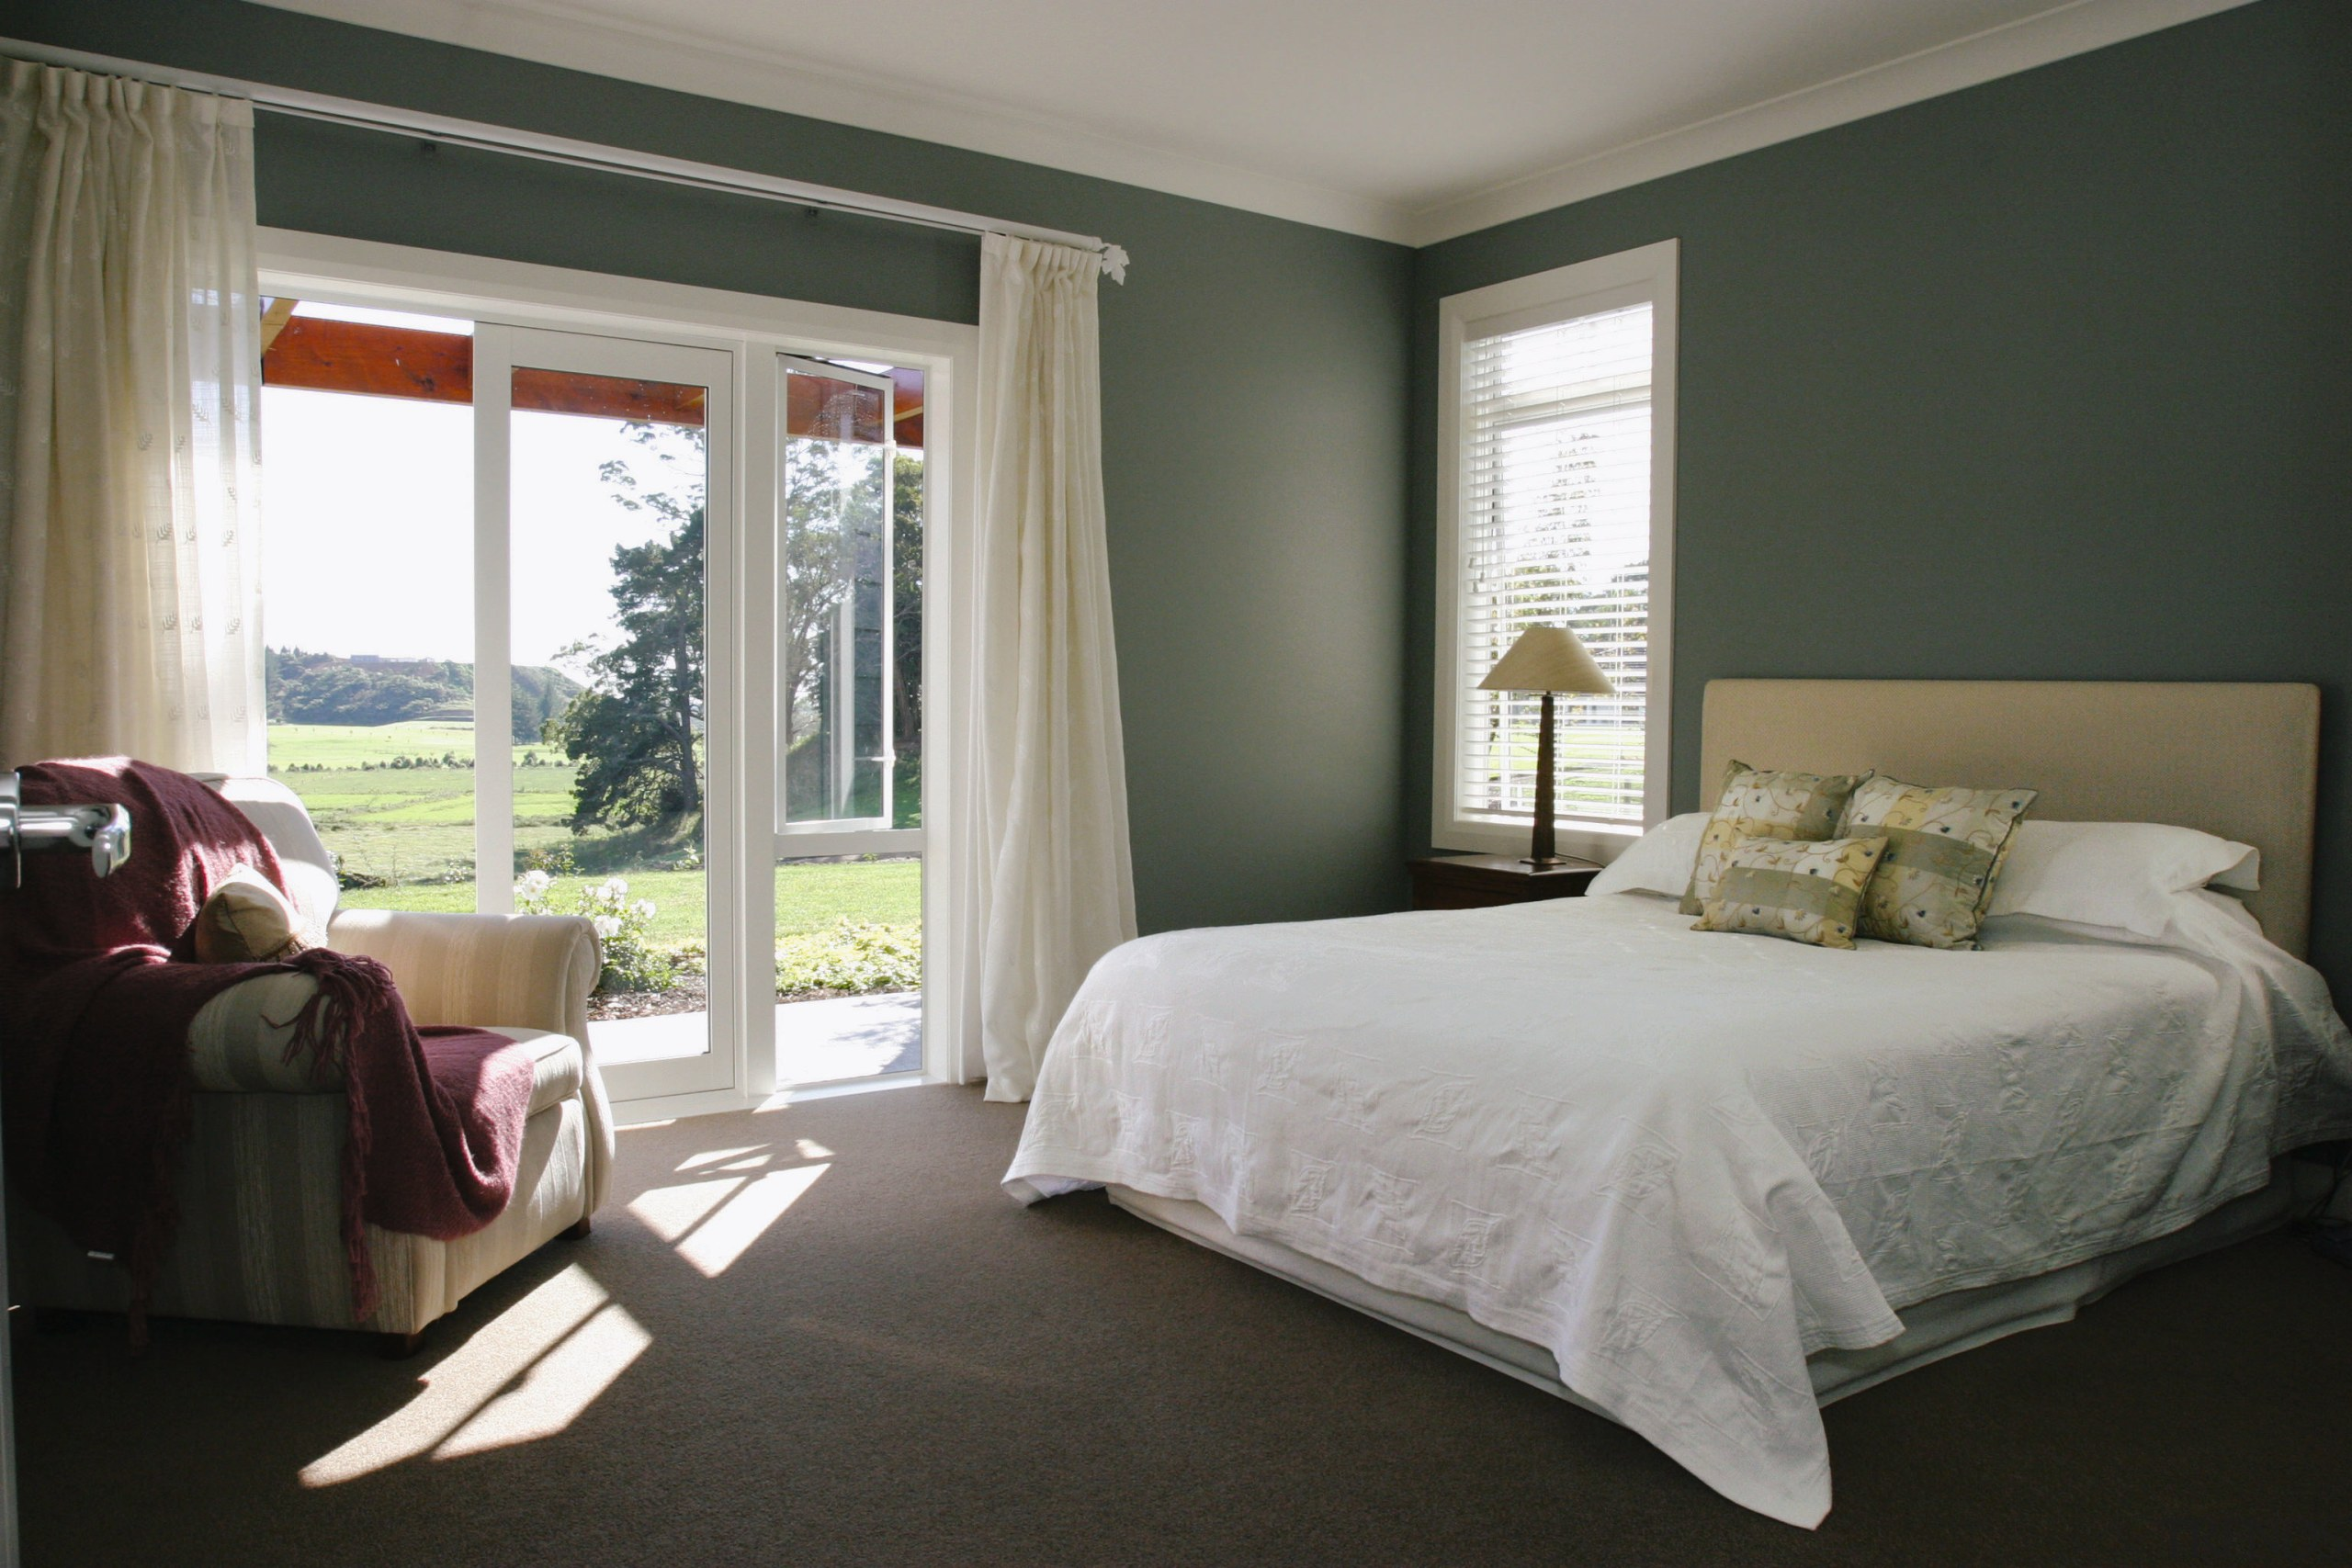 breathtaking green bedroom walls white furniture | A view of a bedroom, dark green wal... - Gallery - 2 | Trends